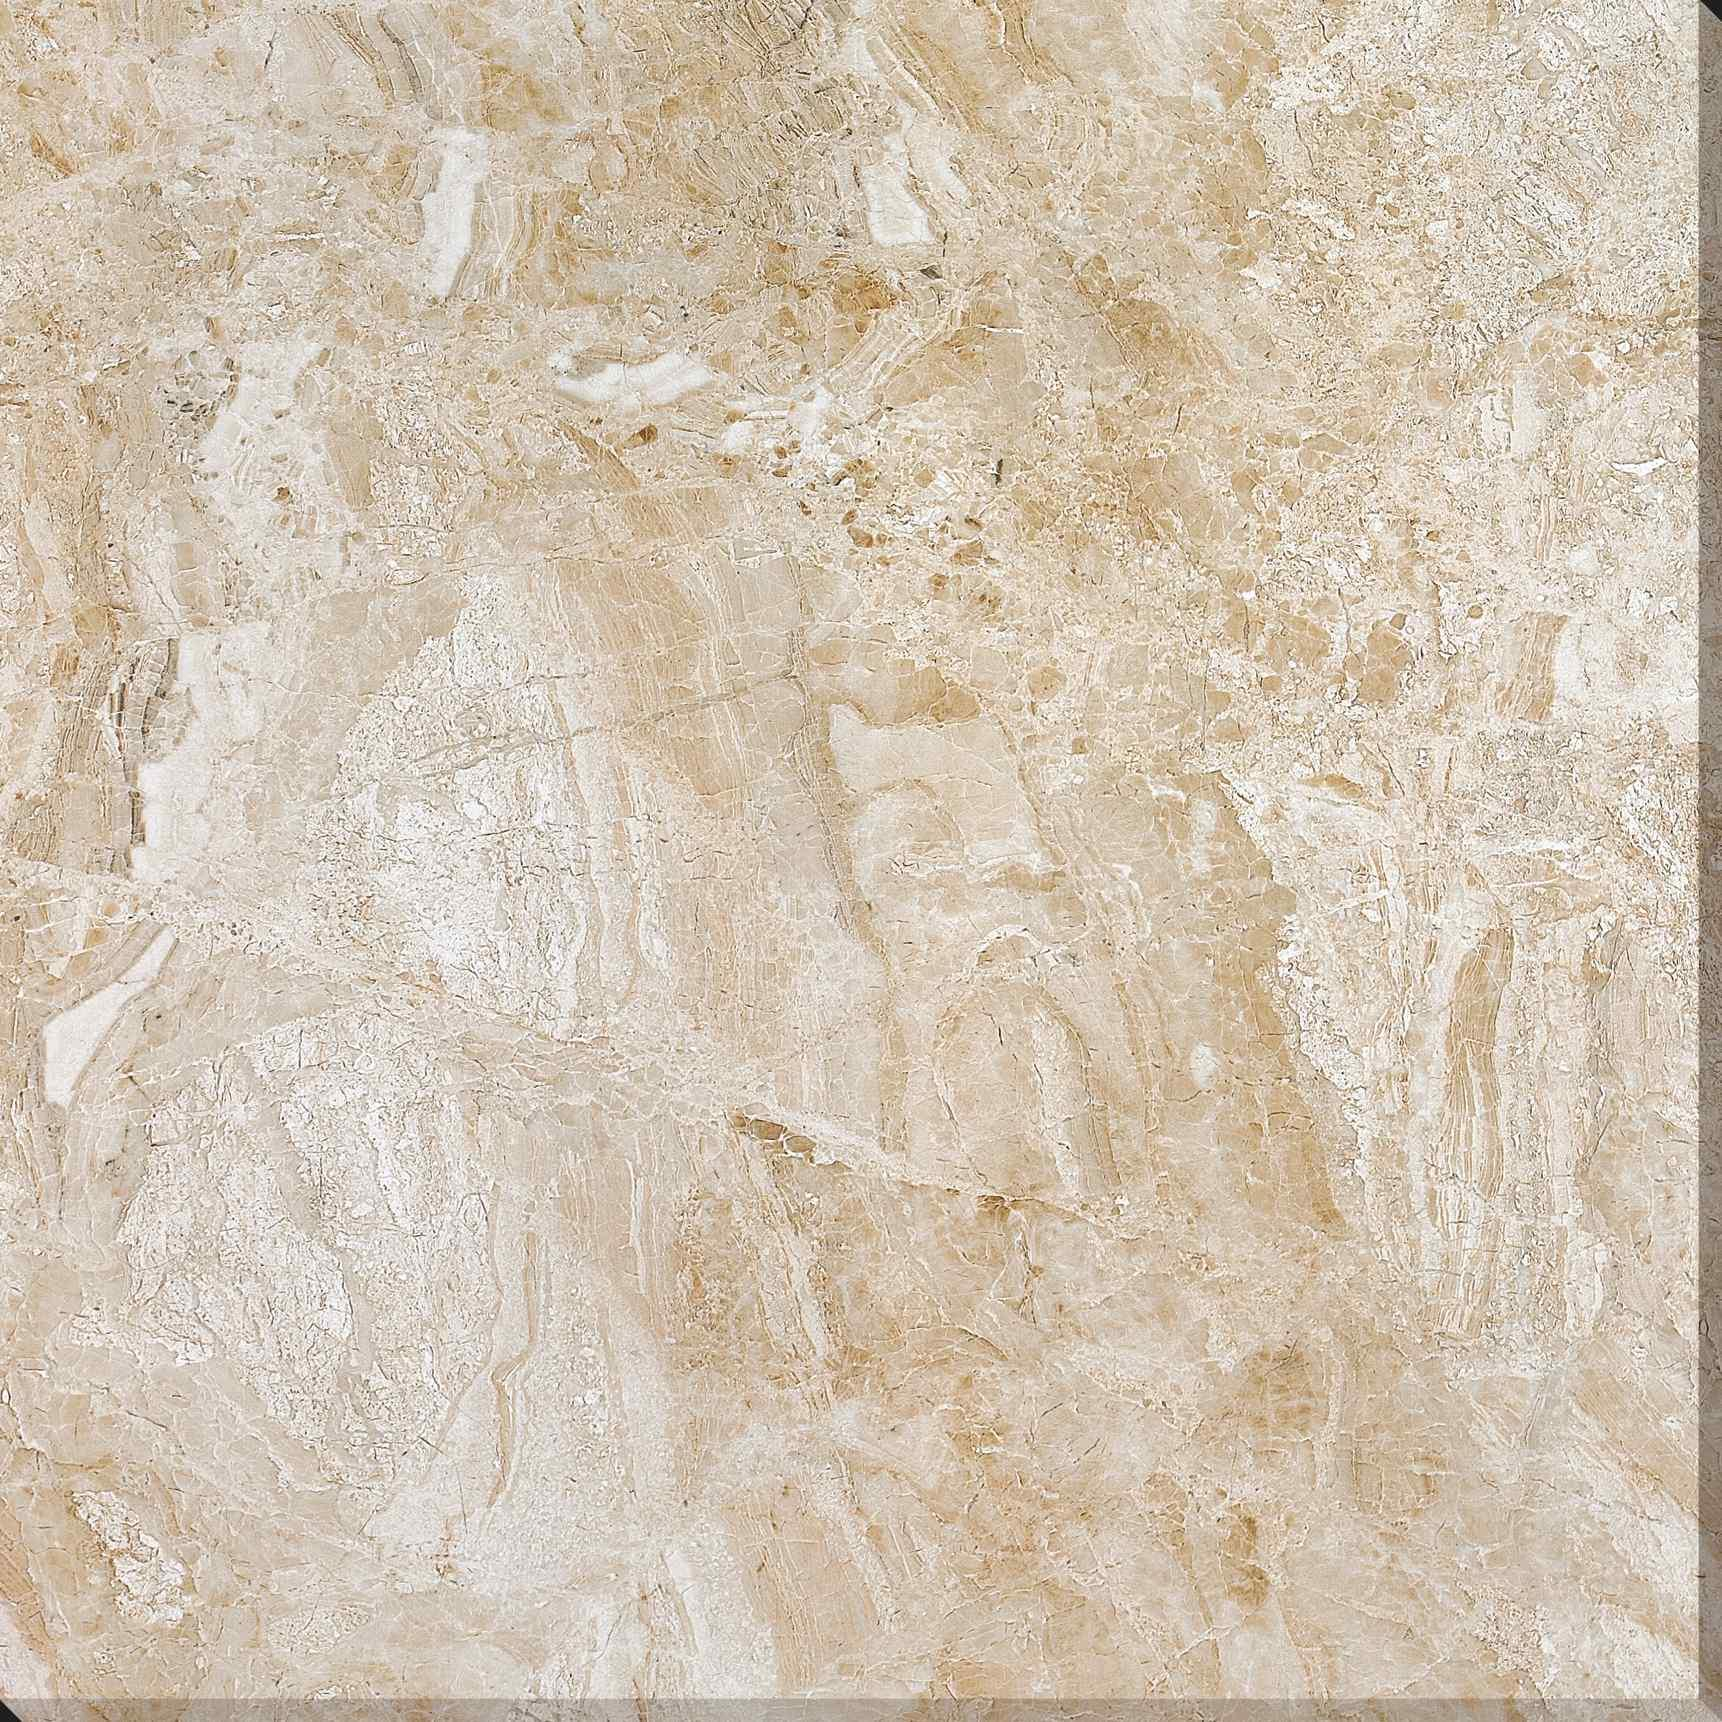 Cappuccino  marble tile  Full polished marble tiles cloud series VPM6161S  60x60 80x80cm